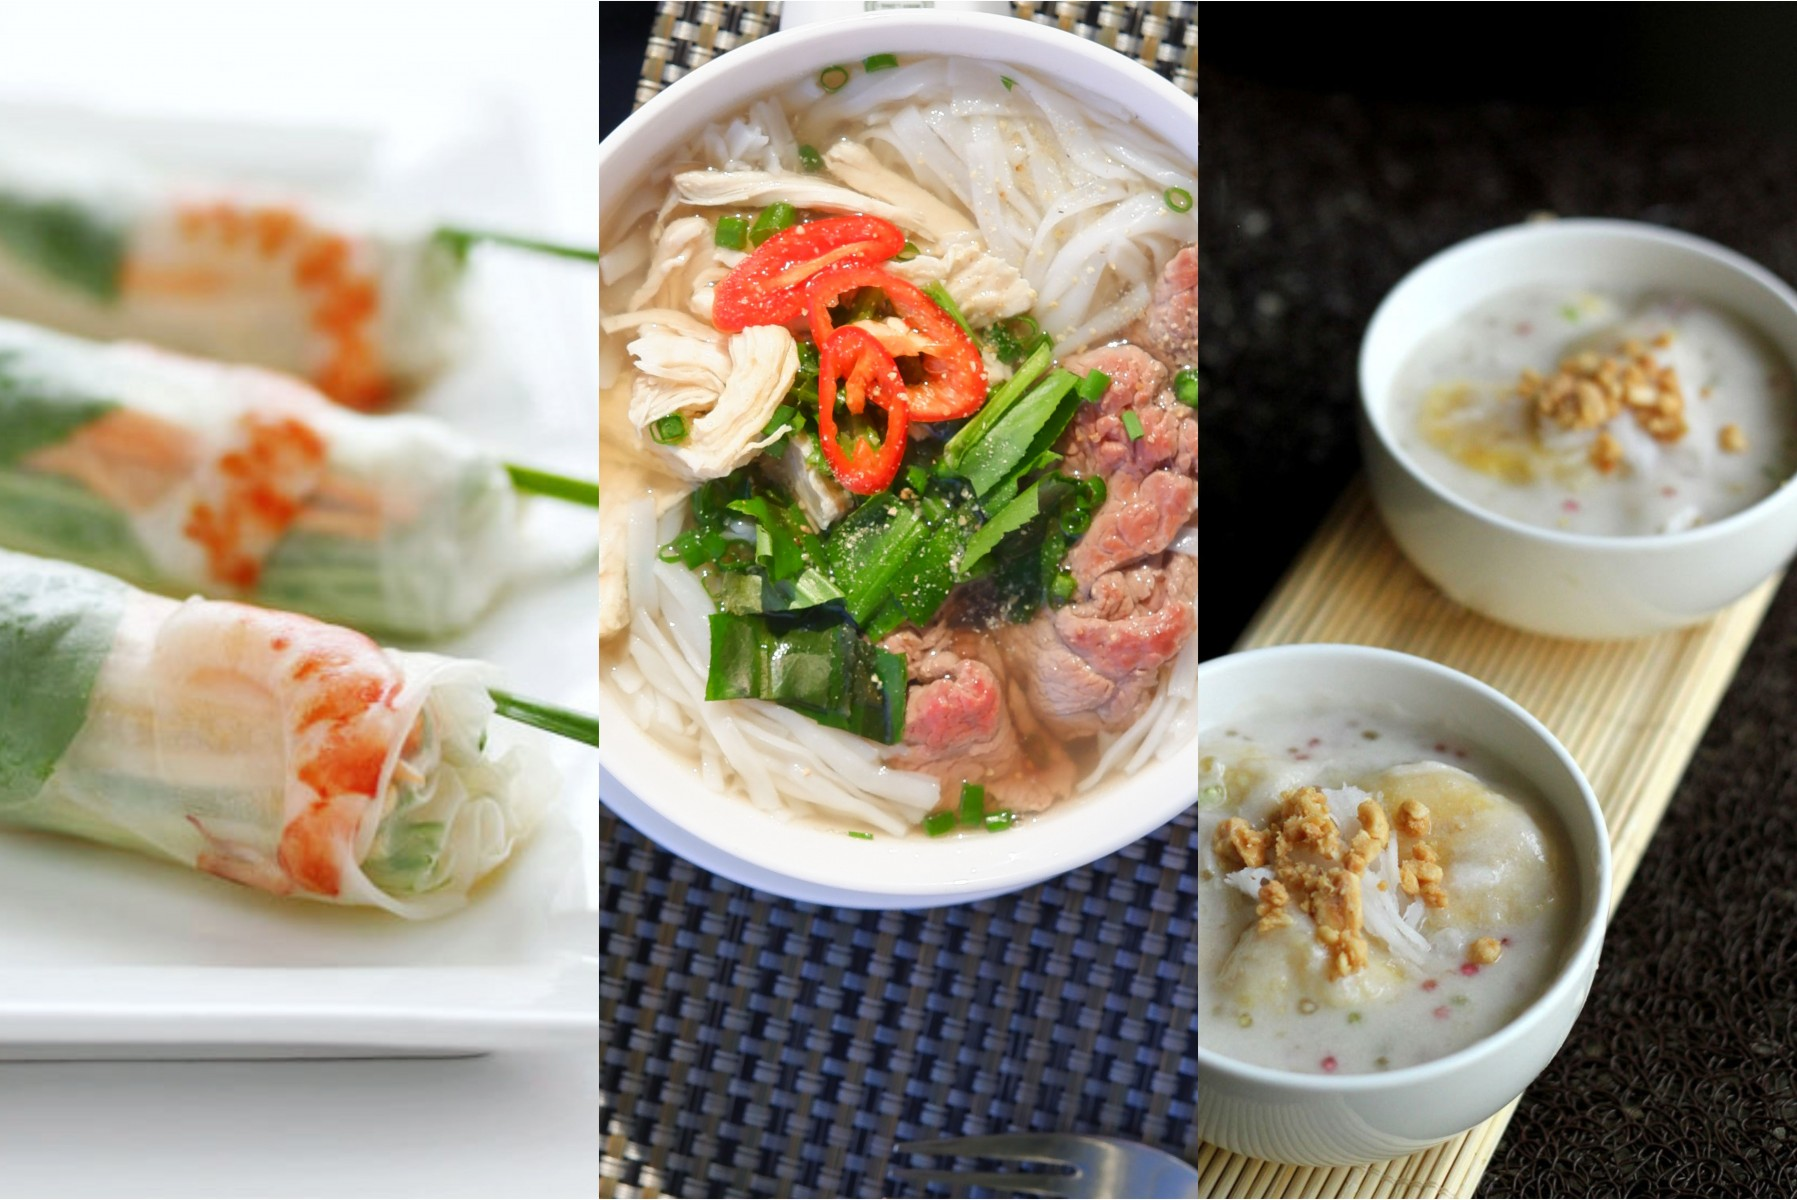 Vietnamese spring rollsaromatic bowl of pho (noodle soup) or fried rice with fresh seafood.